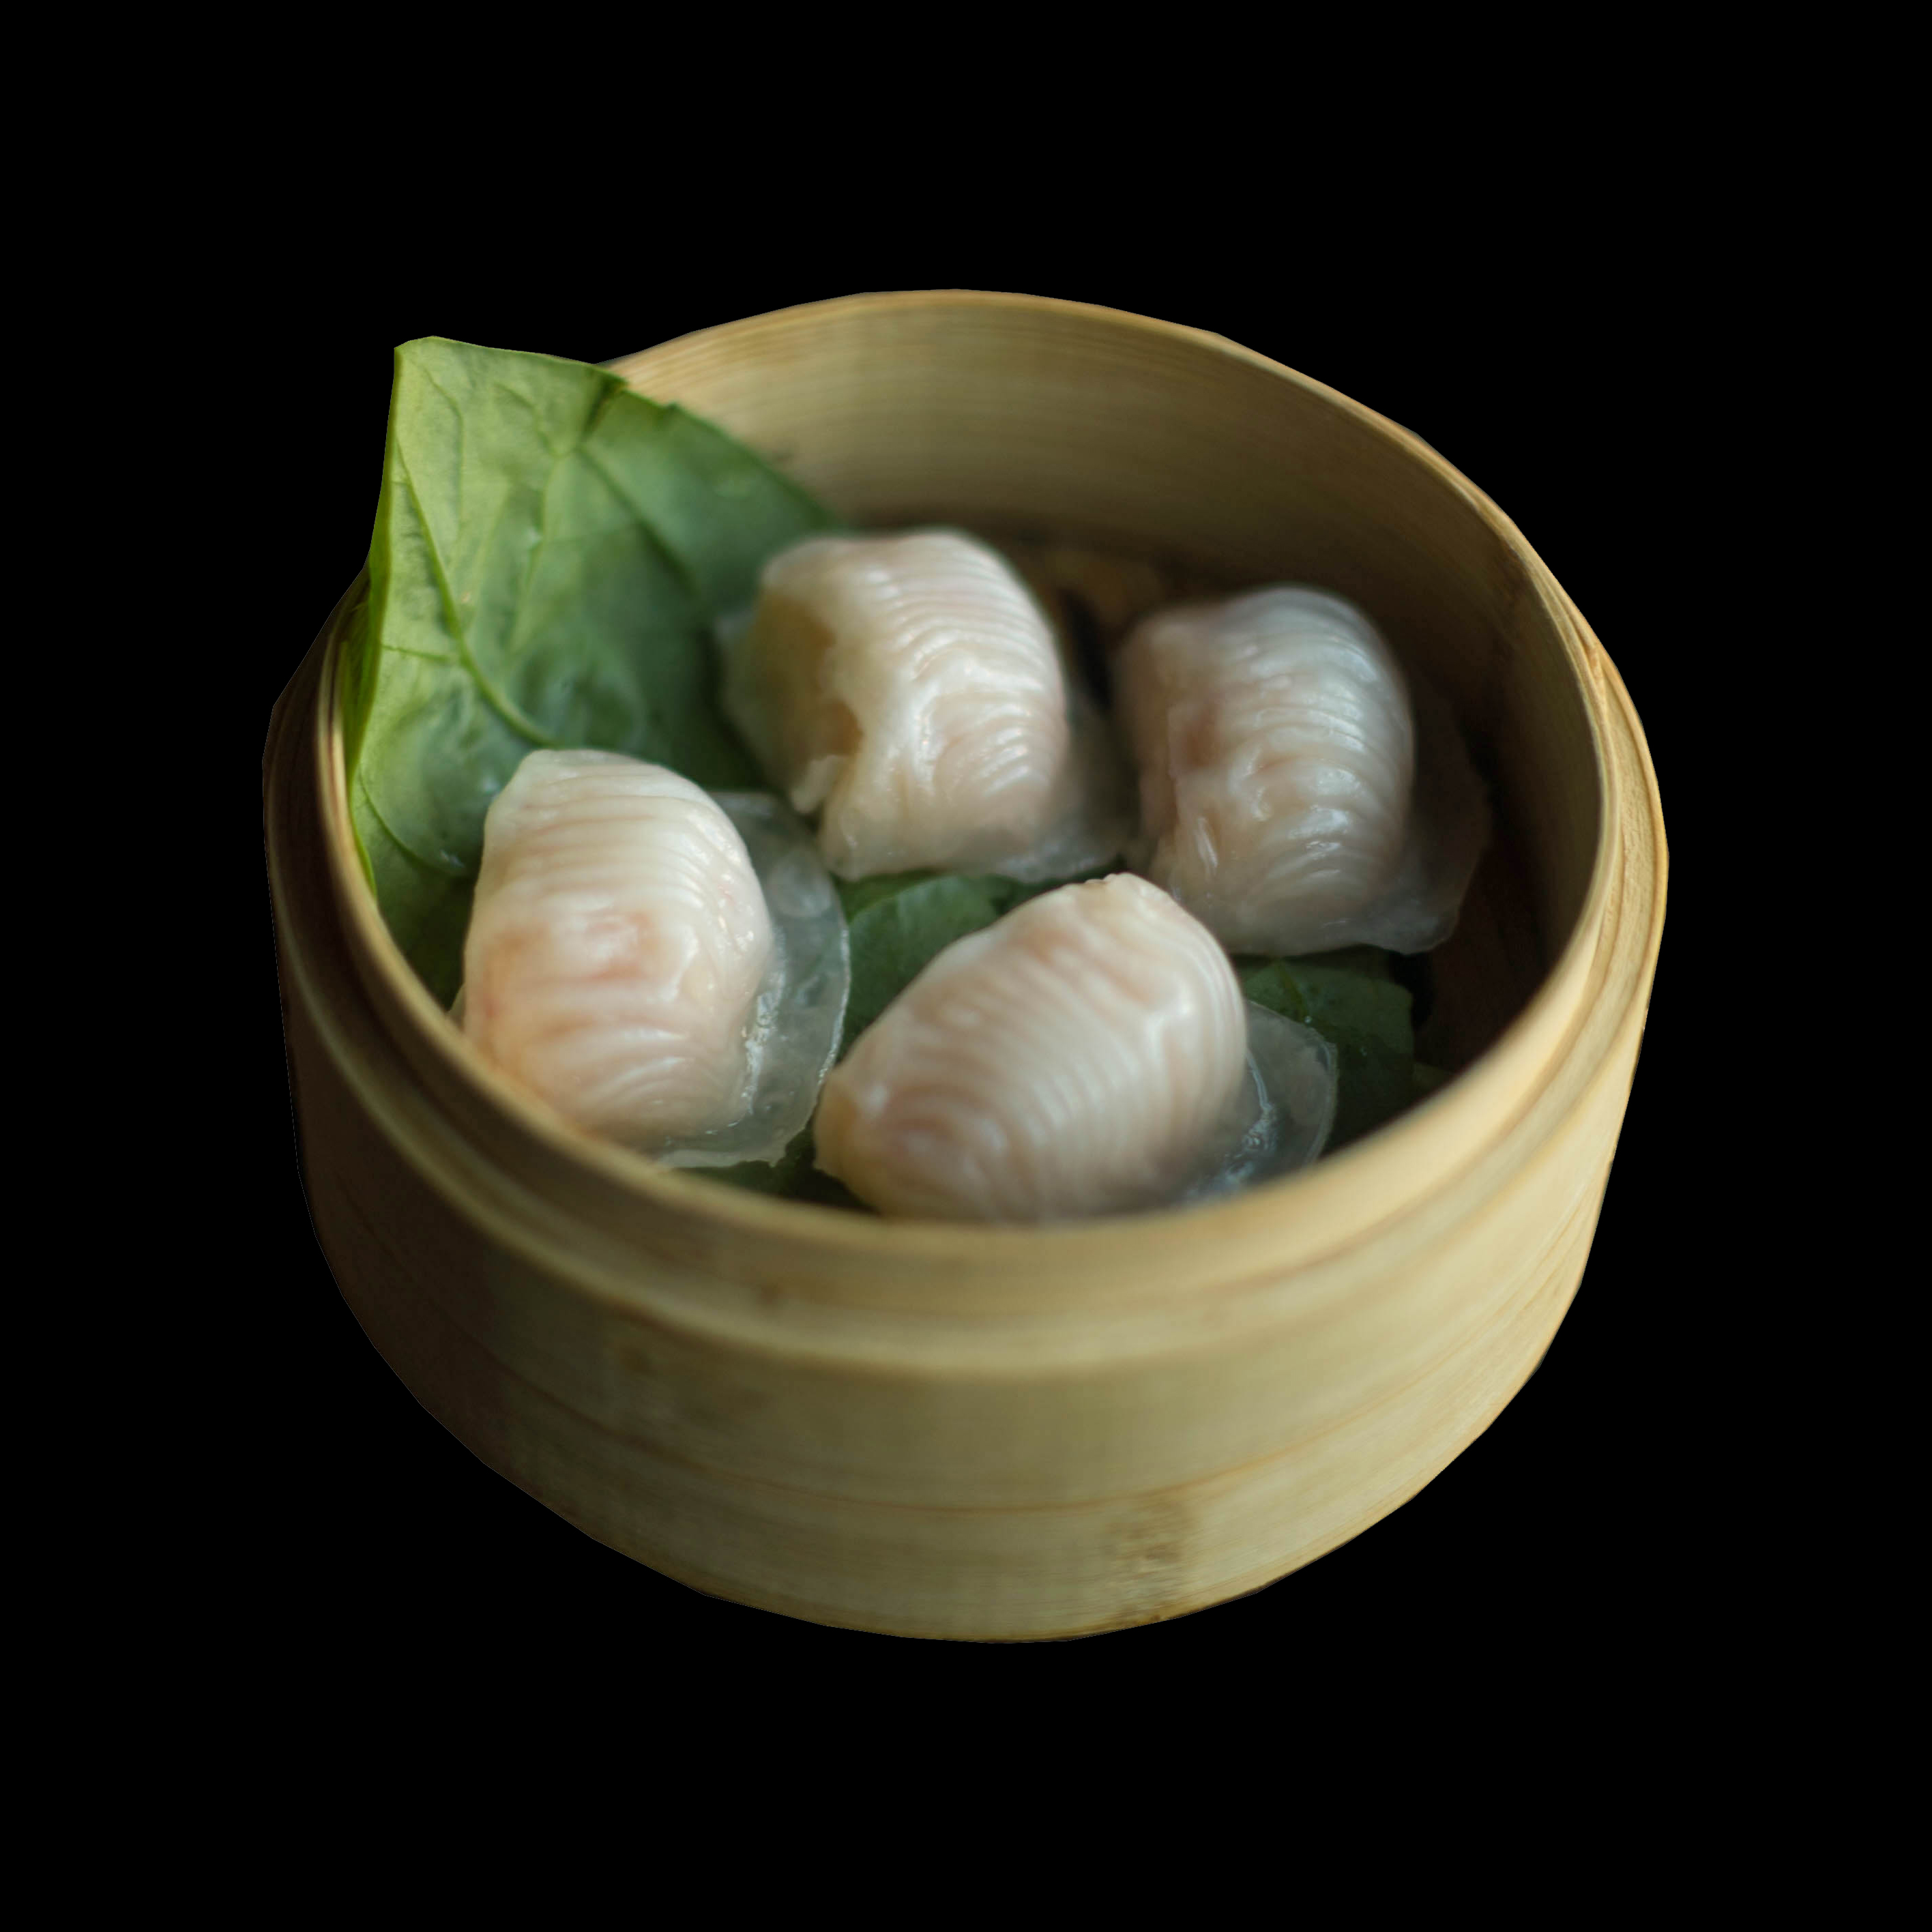 2. 虾饺 Shrimp Dumplings